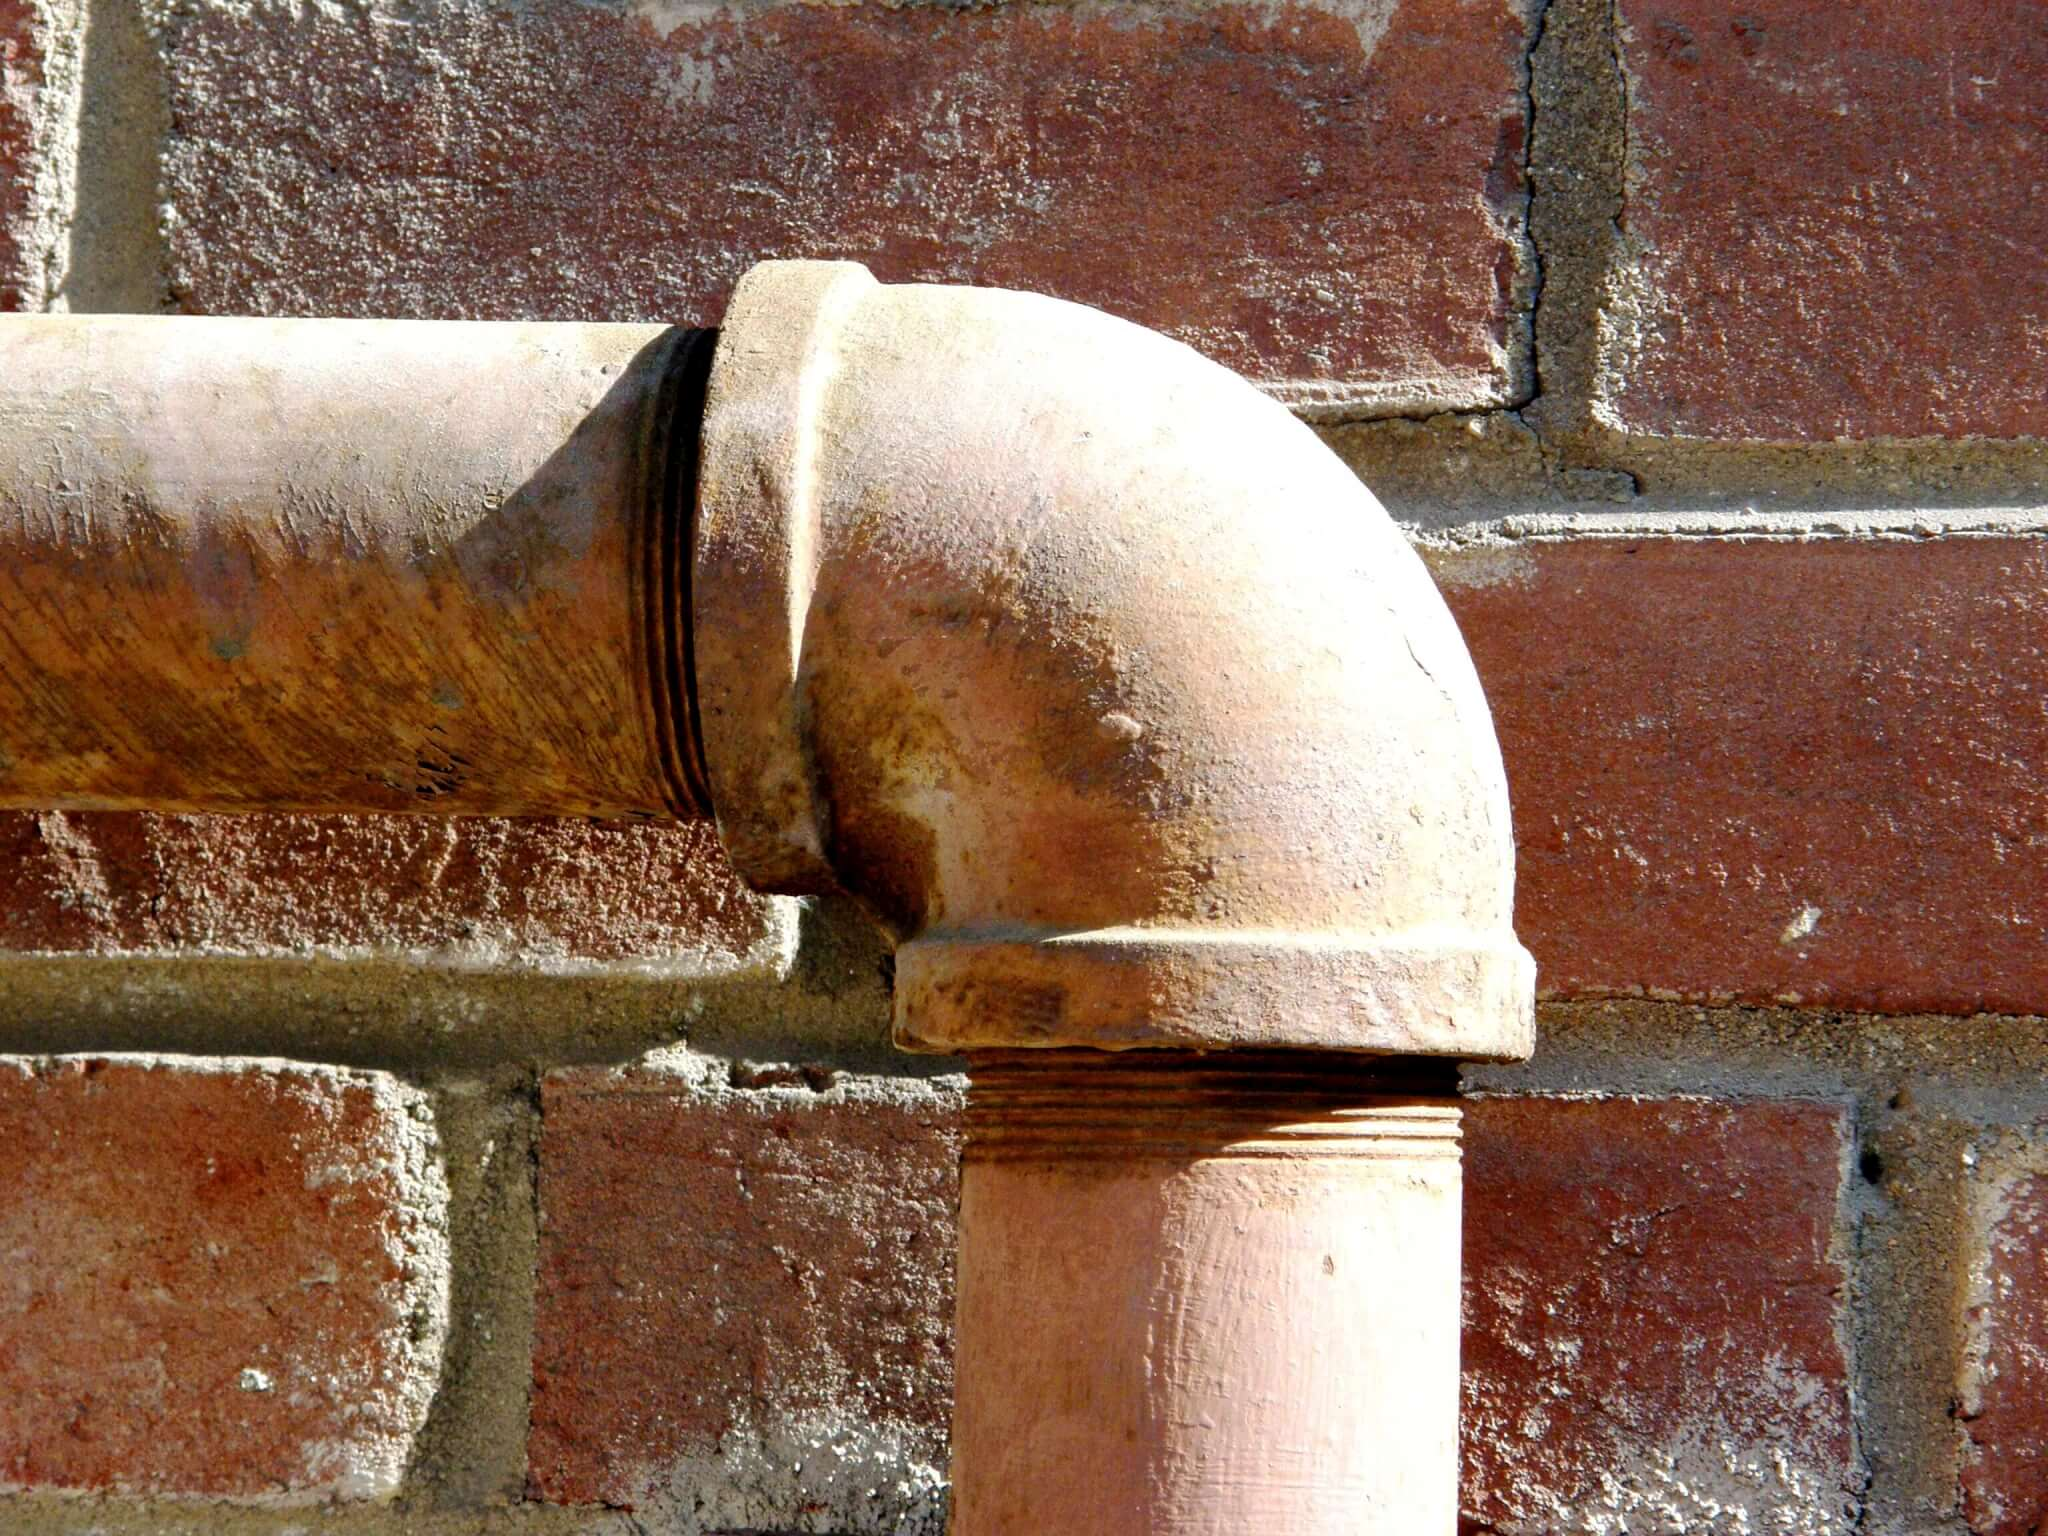 Buying a house with polybutylene pipes